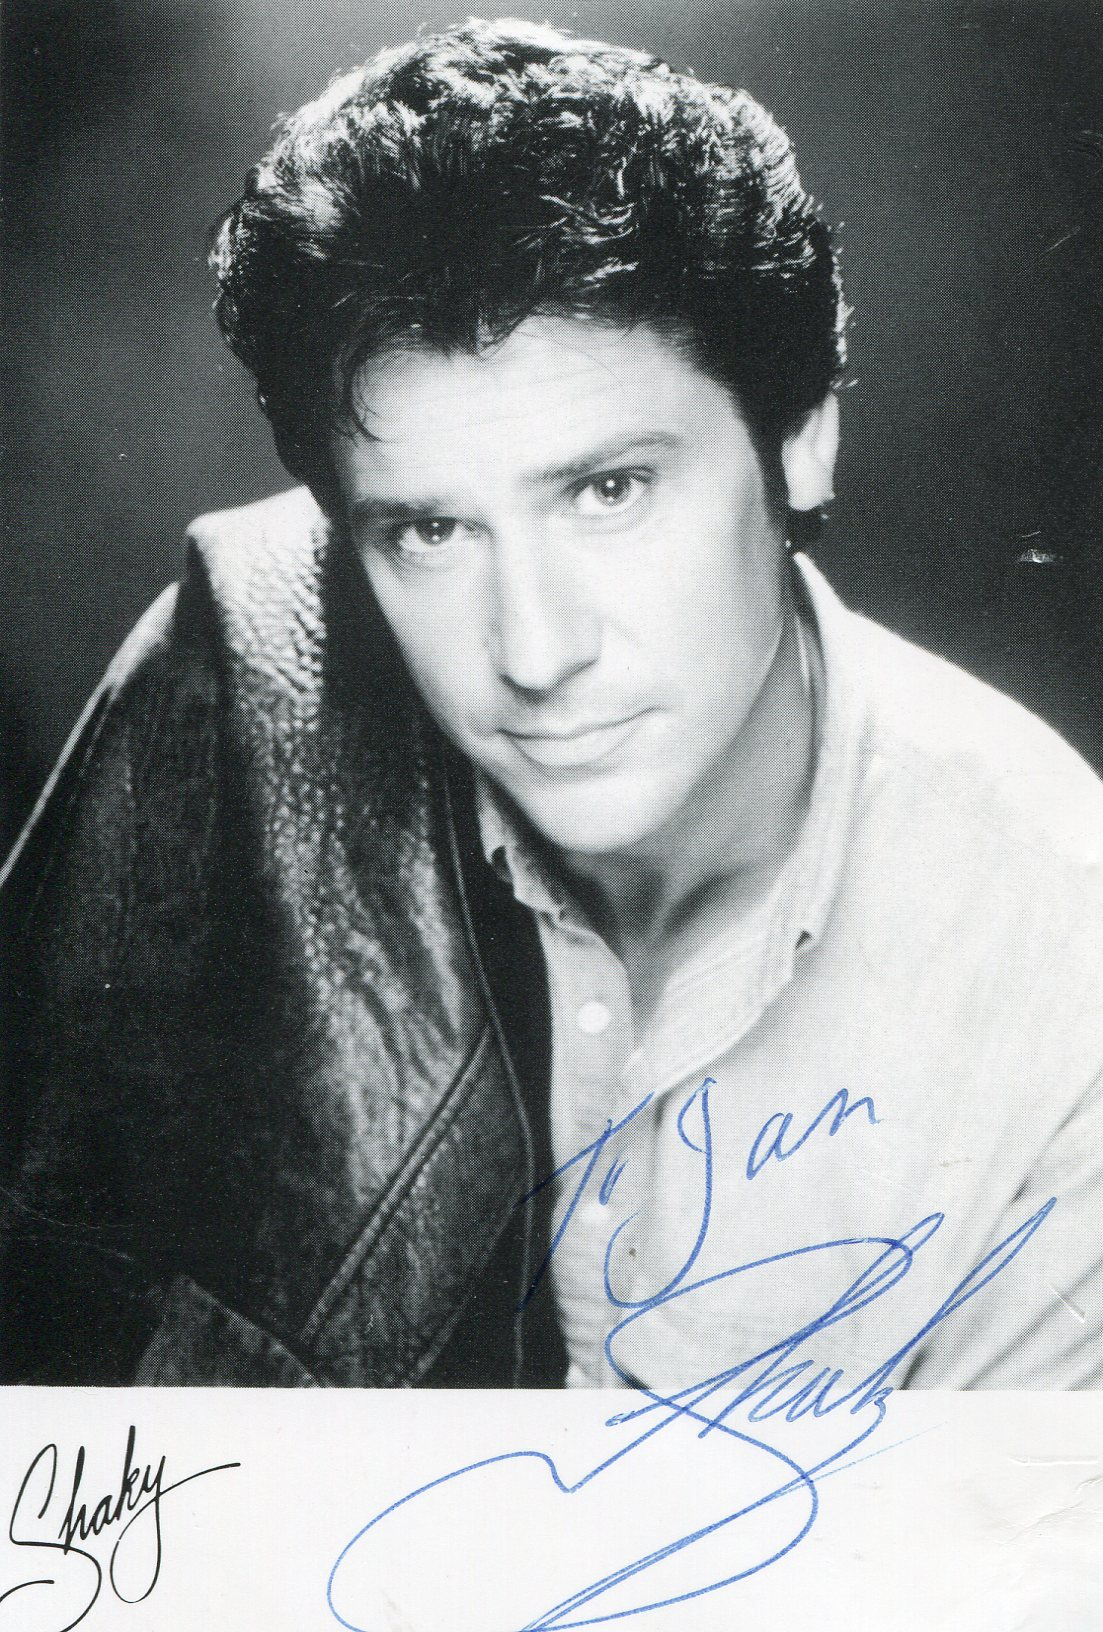 shakin stevens archives   movies amp autographed portraits through the decadesmovies amp autographed